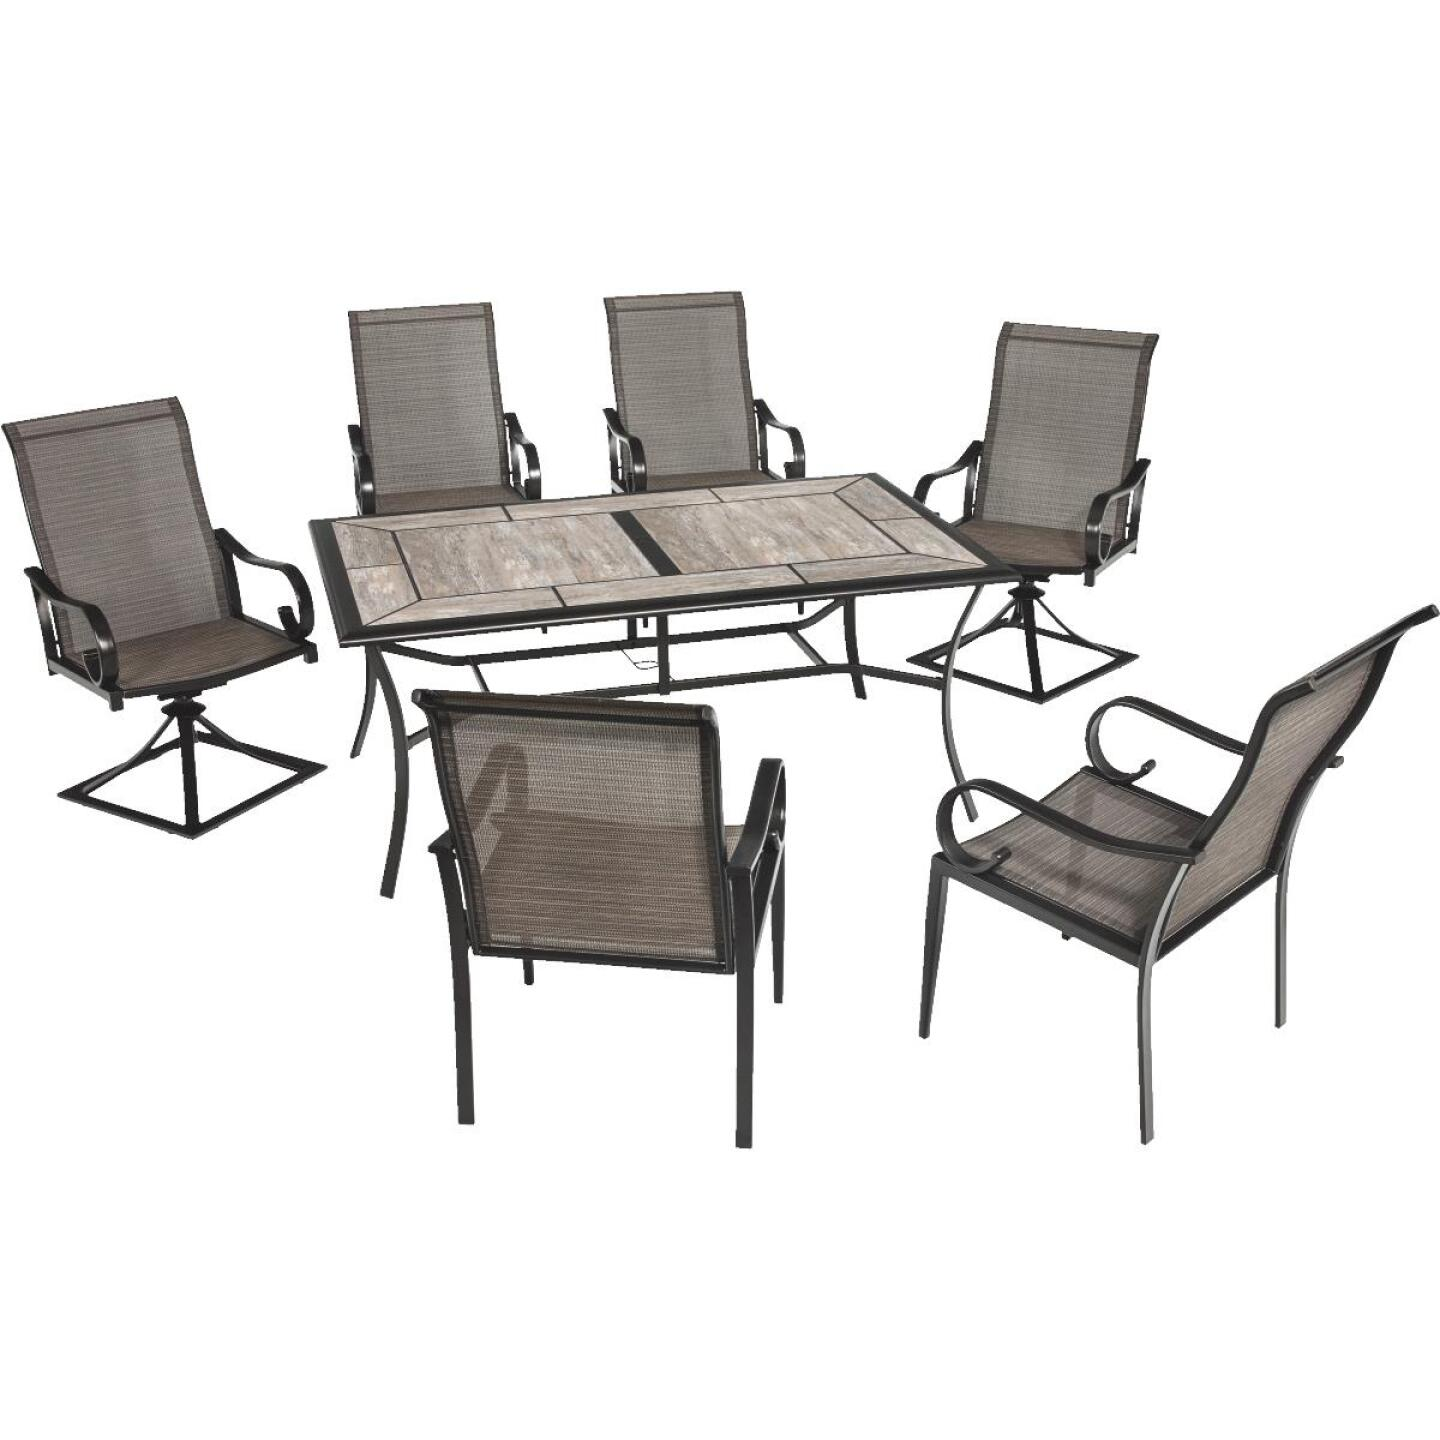 Outdoor Expressions Berkshire 7-Piece Dining Set Image 4